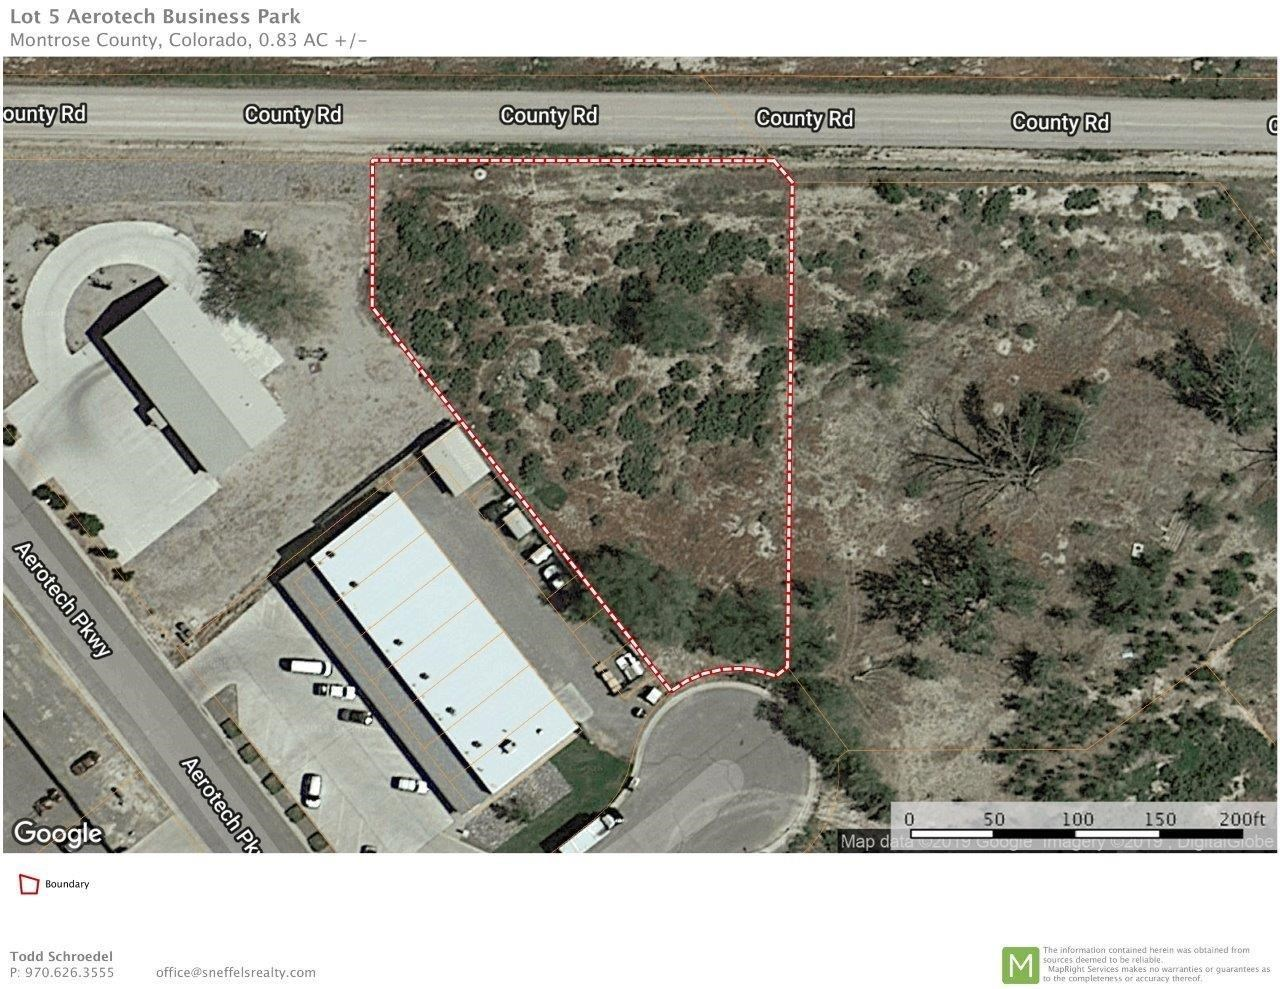 Commercial Industrial Land For Sale Montrose SW Colorado